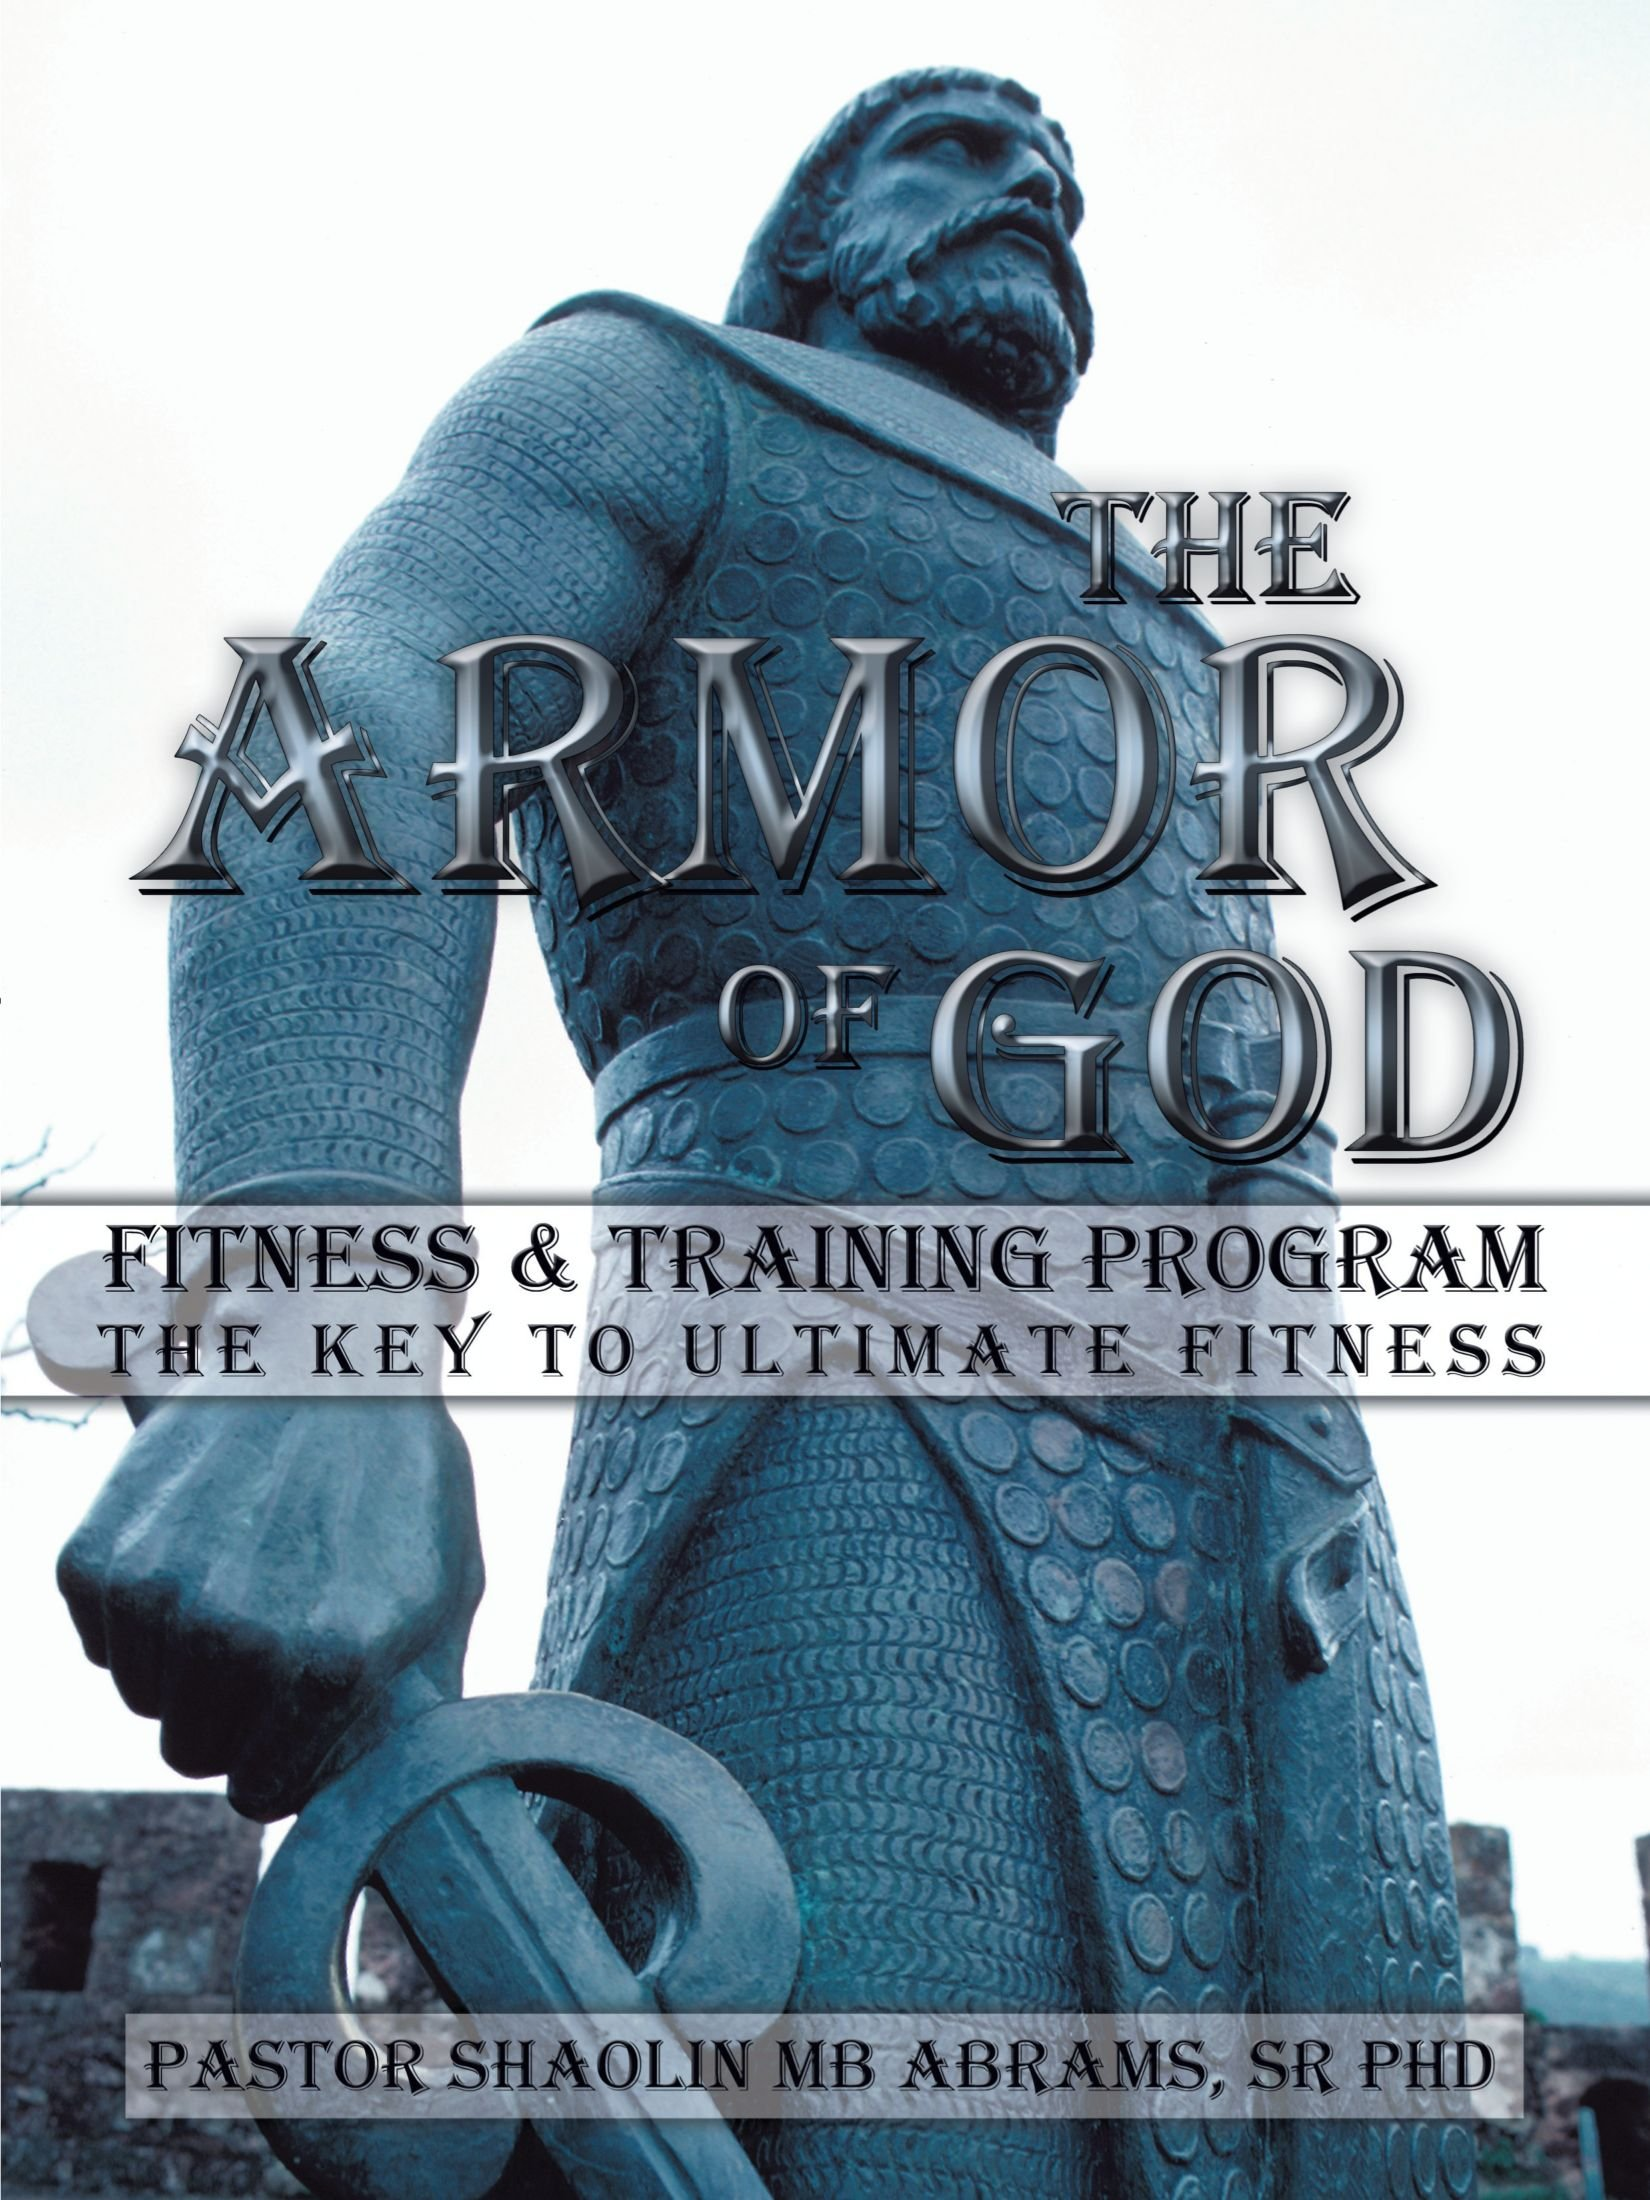 Download The Armor of GOD Fitness & Training Program: The Key to Ultimate Fitness pdf